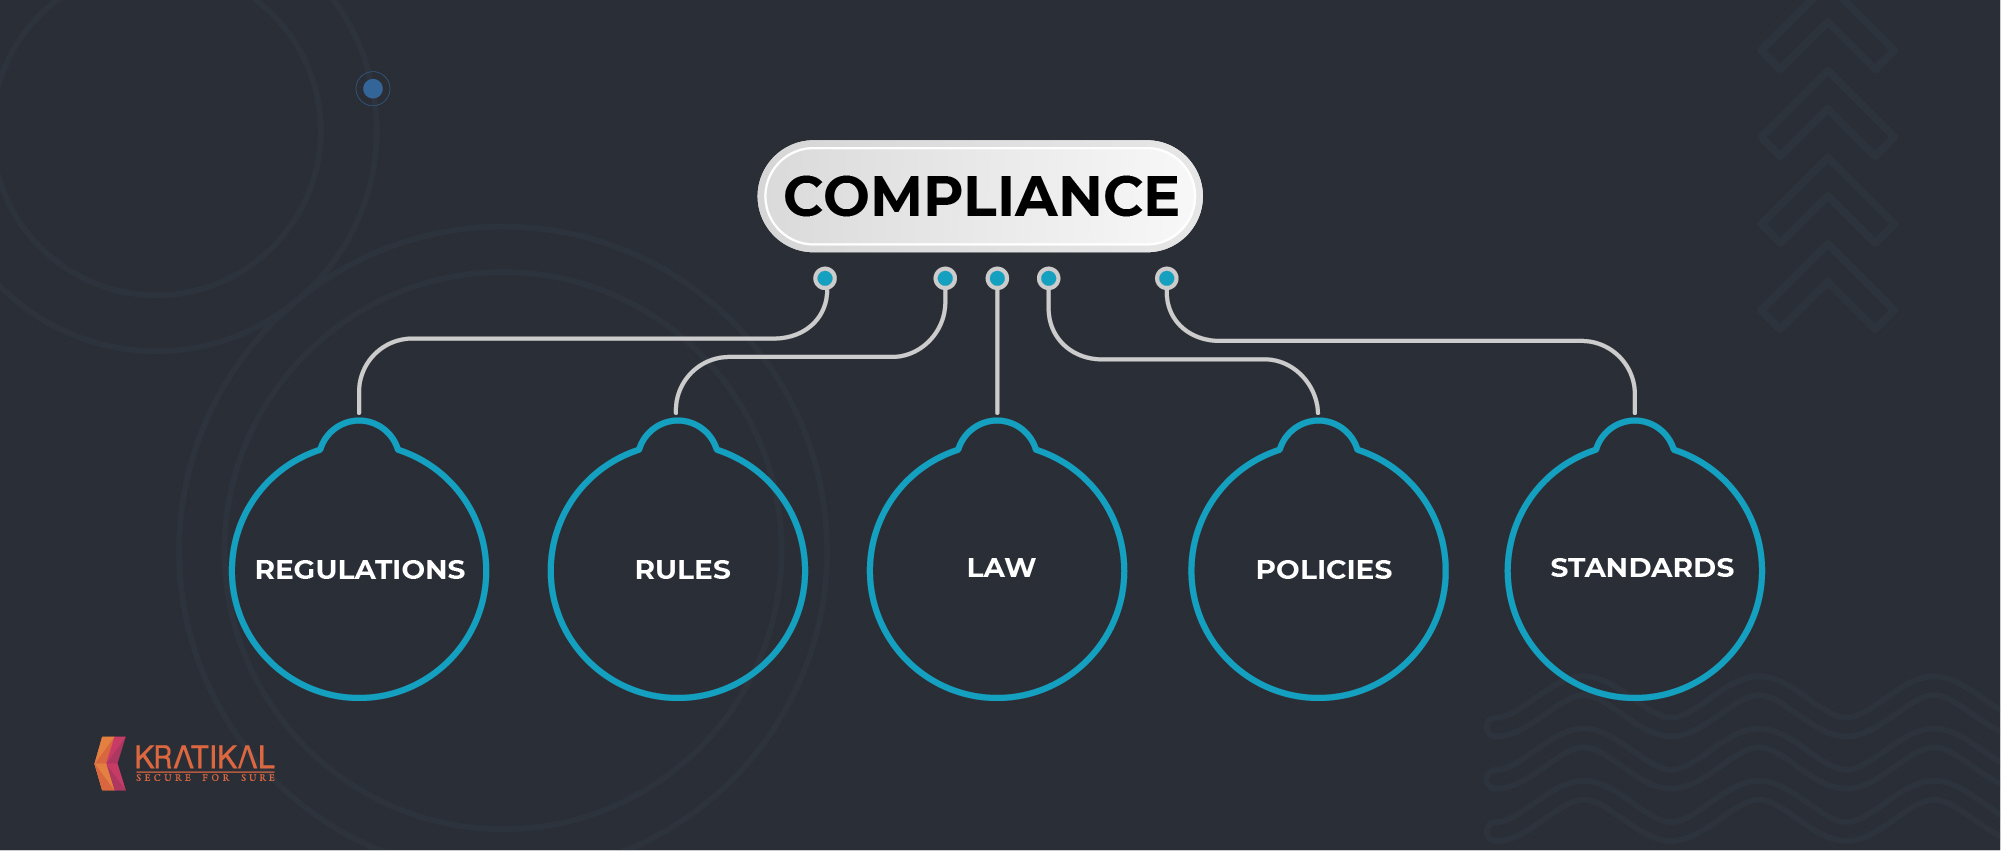 Cyber security compliance Management in Organizations